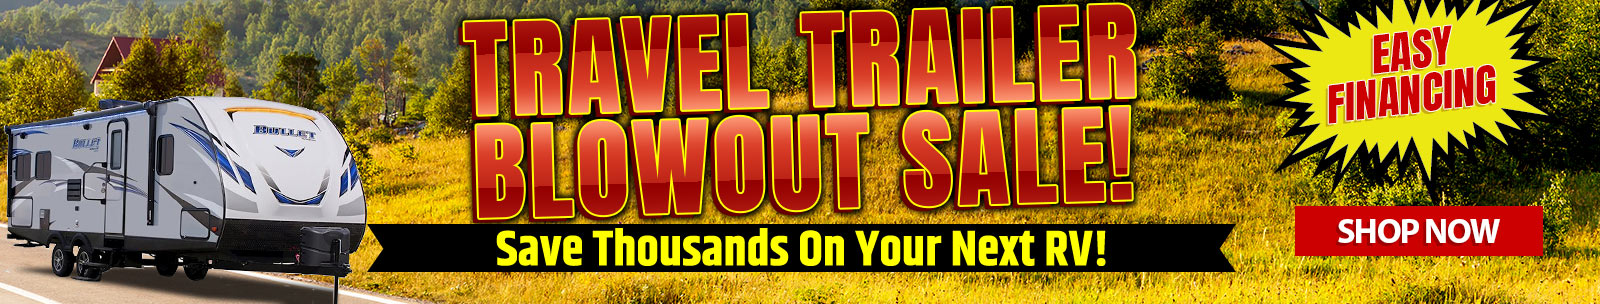 Travel Trailer Blowout Sale!